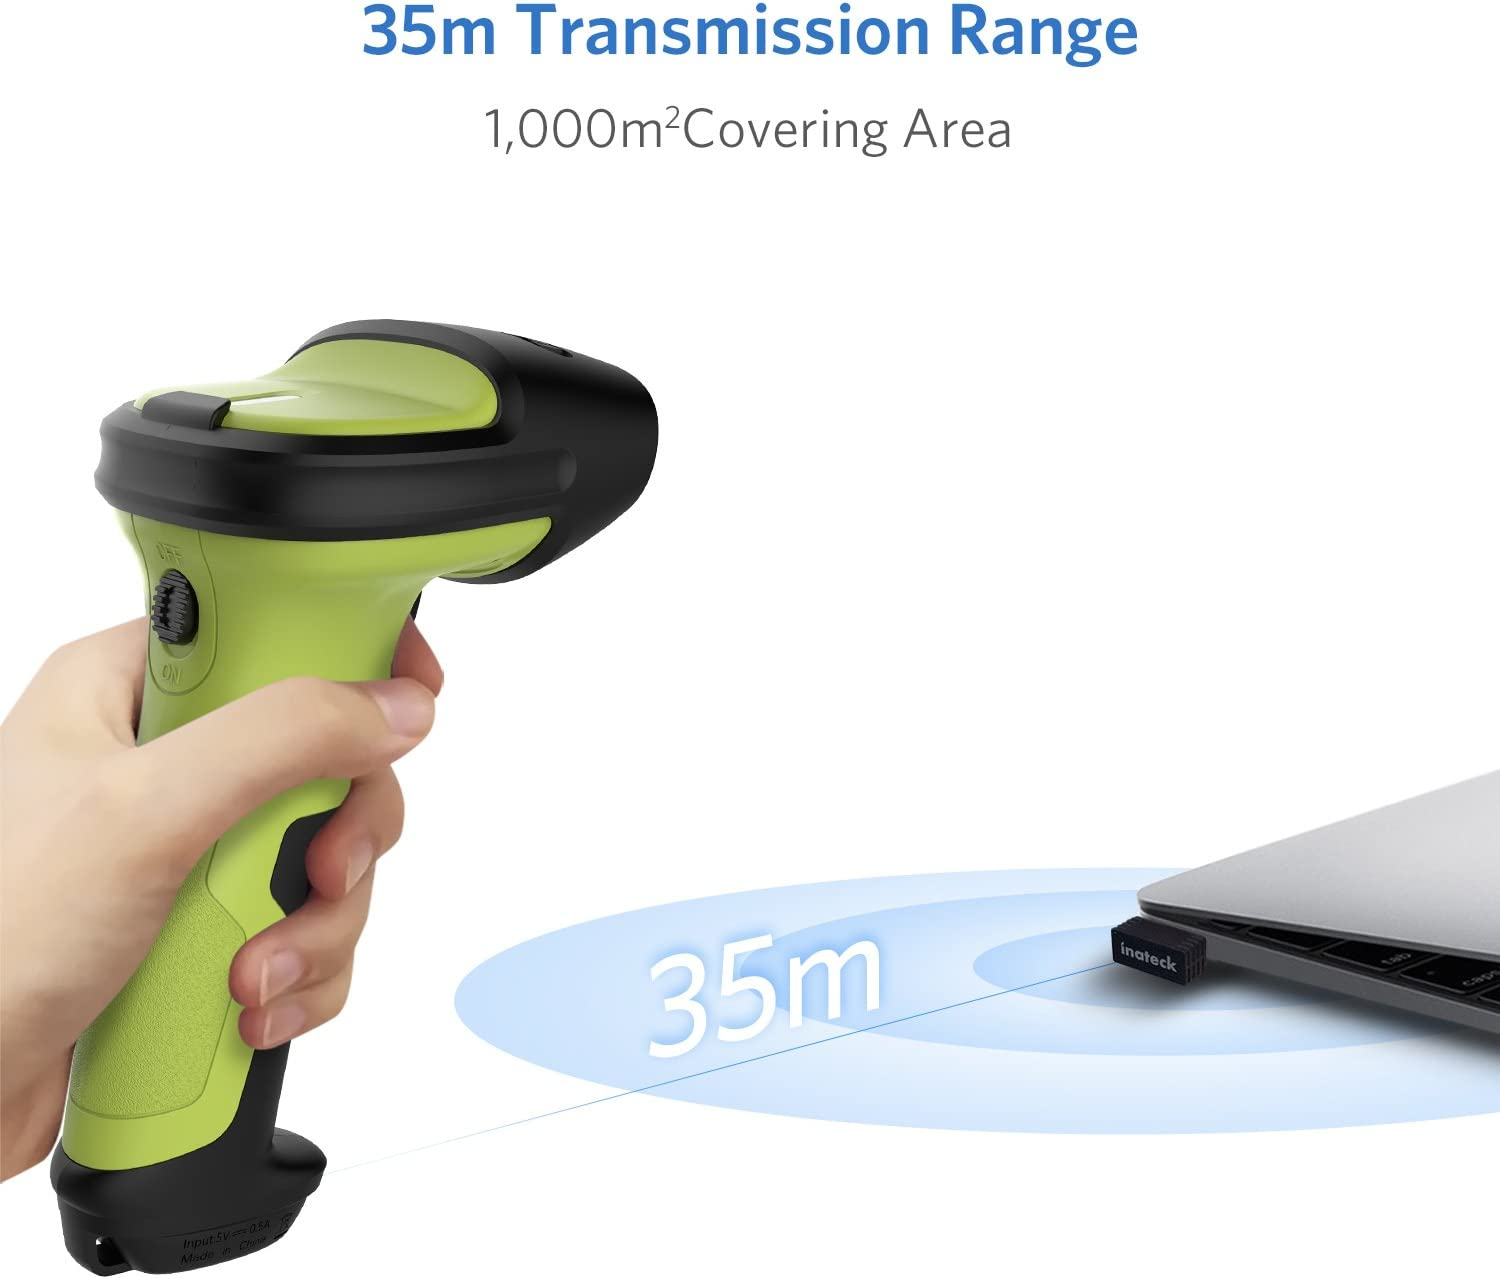 Automatic Fast and Precise scanning 2600mAh Battery BCST-60-BK Working Time Approx Inateck 2.4GHz Wireless Laser Barcode Scanner 35m Range 15 Day